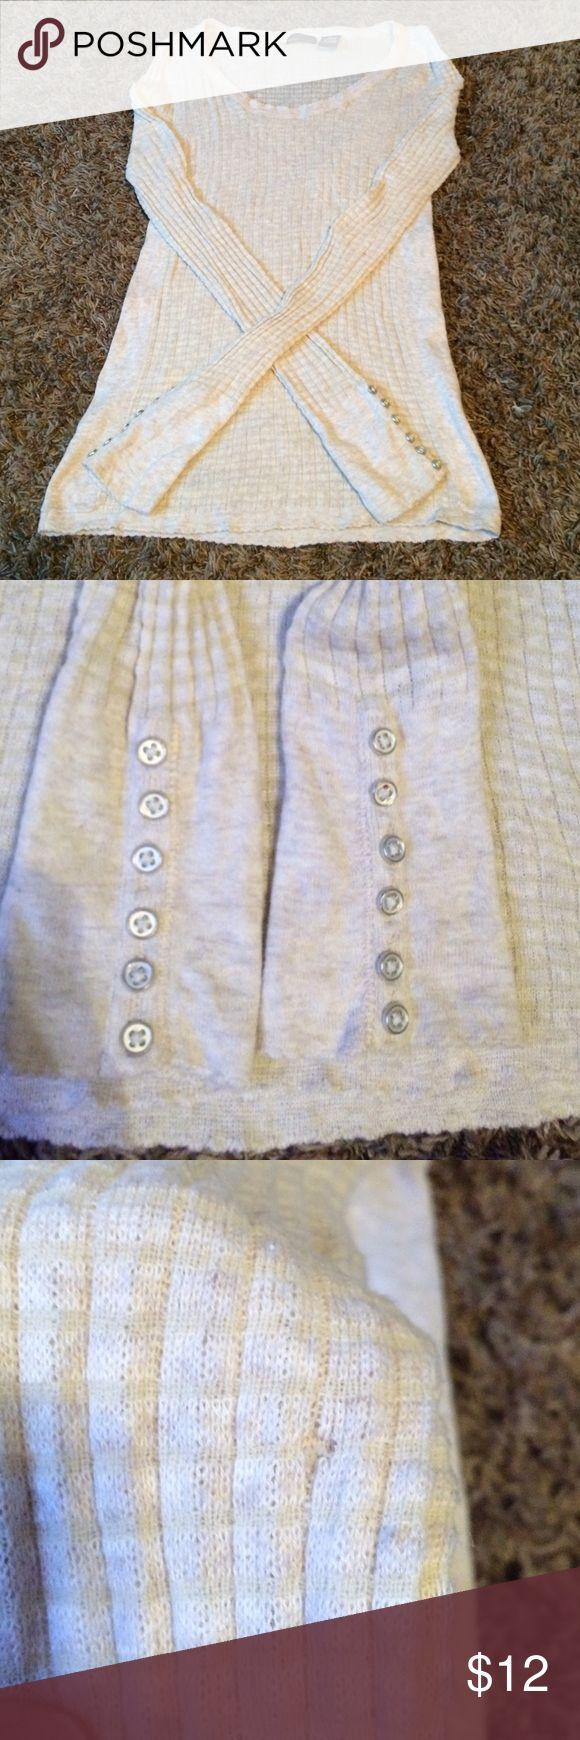 Cream long sleeve top for Victoria Secret Long sleeve top with buttons on sleeve! Small hole in sleeve as pictured! Moda International Tops Tees - Long Sleeve